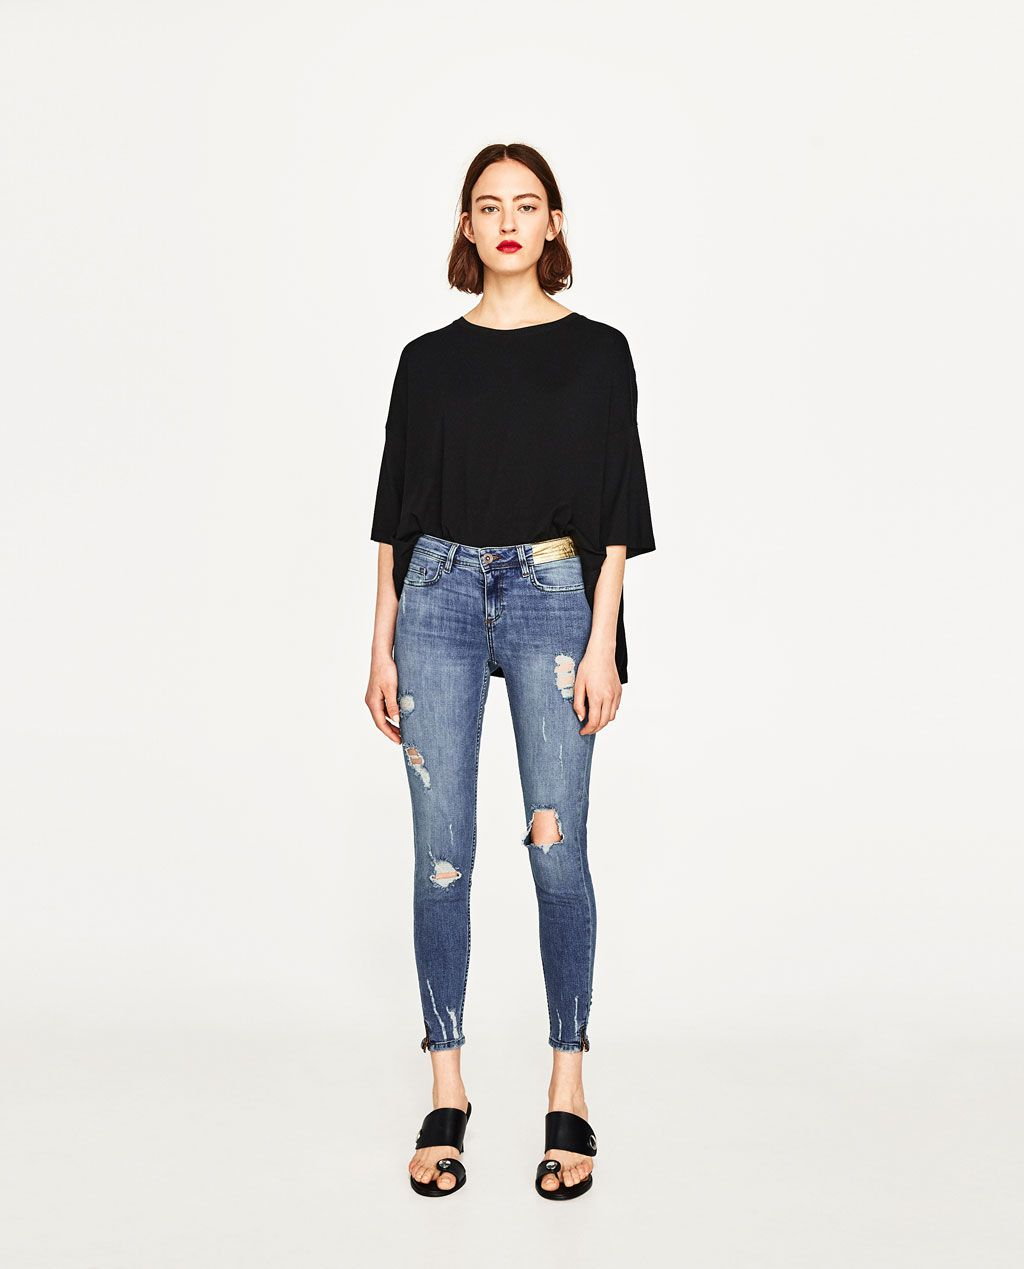 c7291585 RIPPED MID-RISE JEANS-View All-JEANS-WOMAN | ZARA United States ...